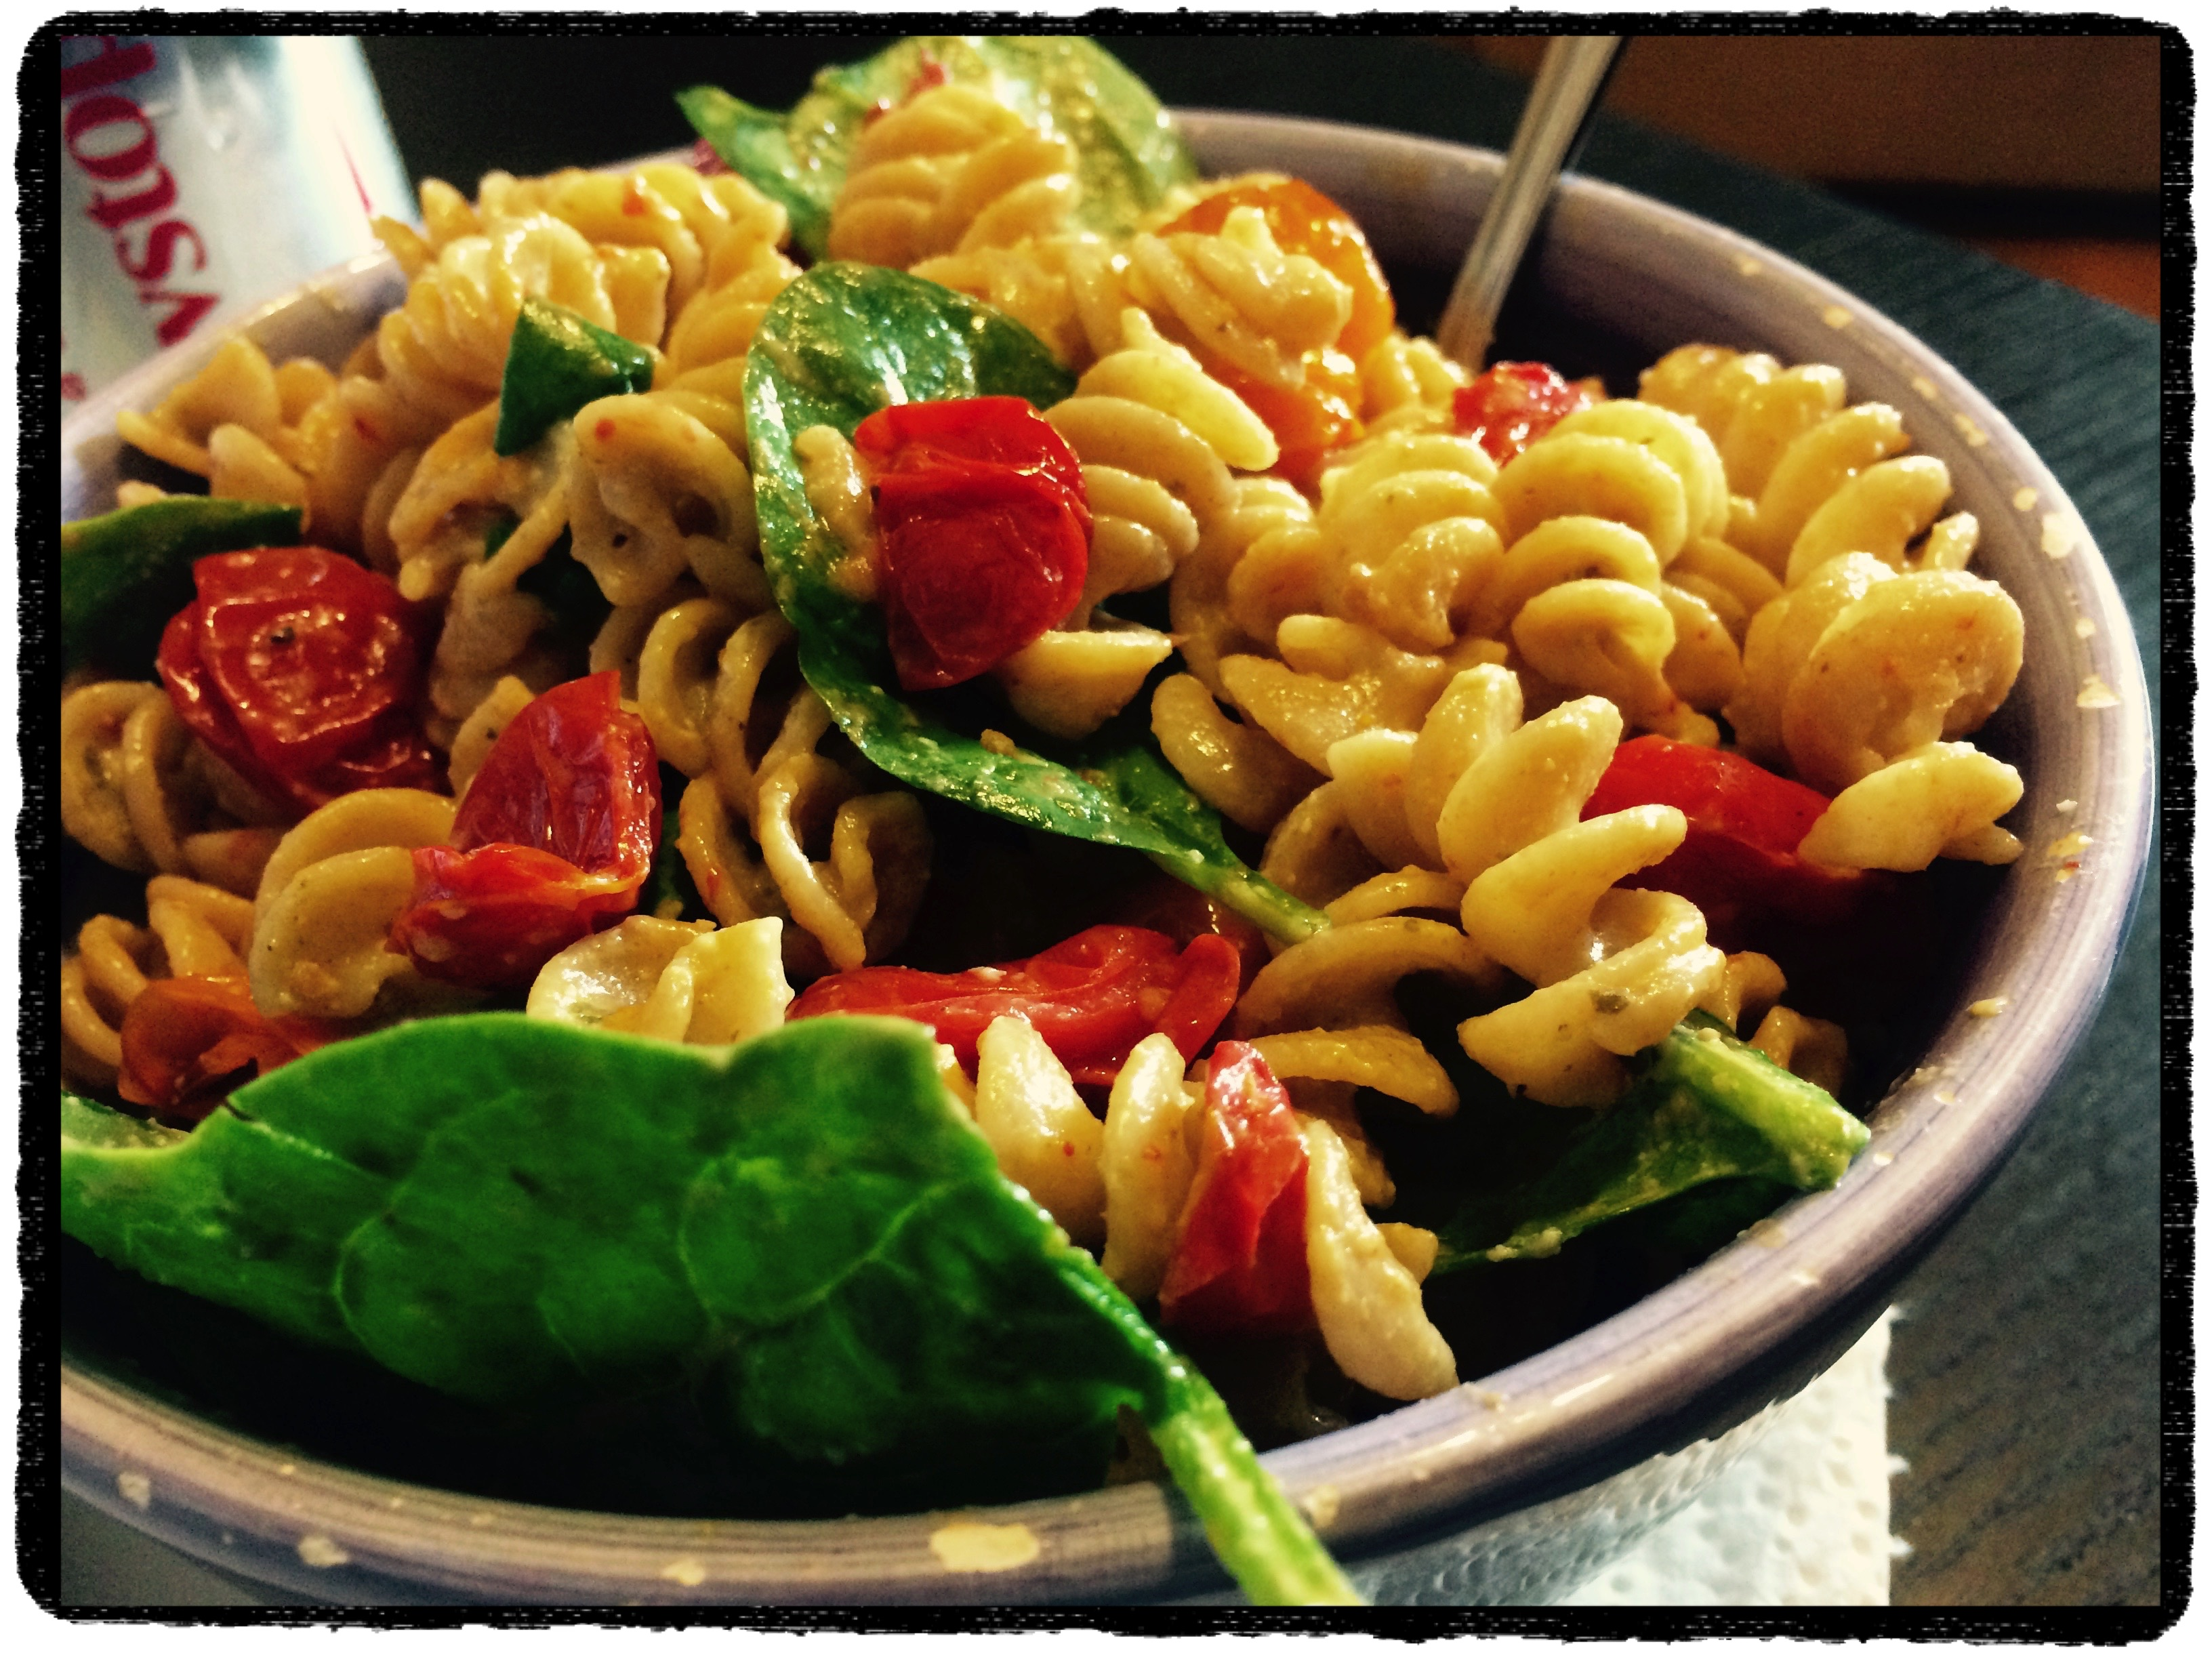 Tossed with spinach, pasta and Basilicotta.